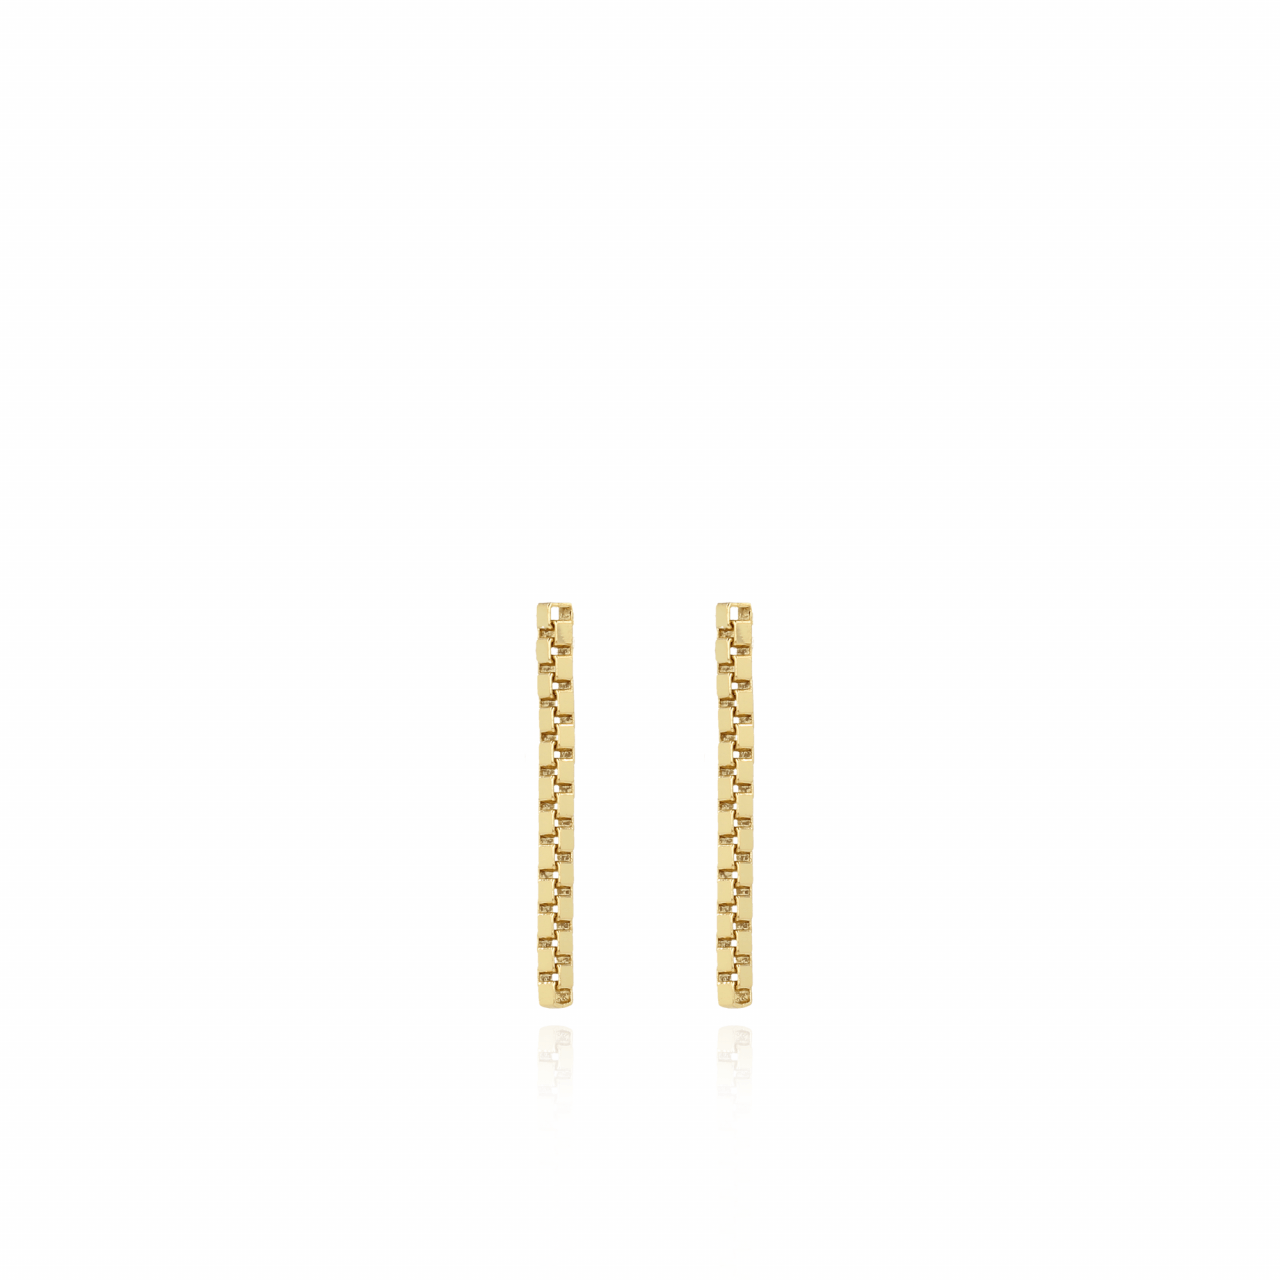 Classic venetian M earrings